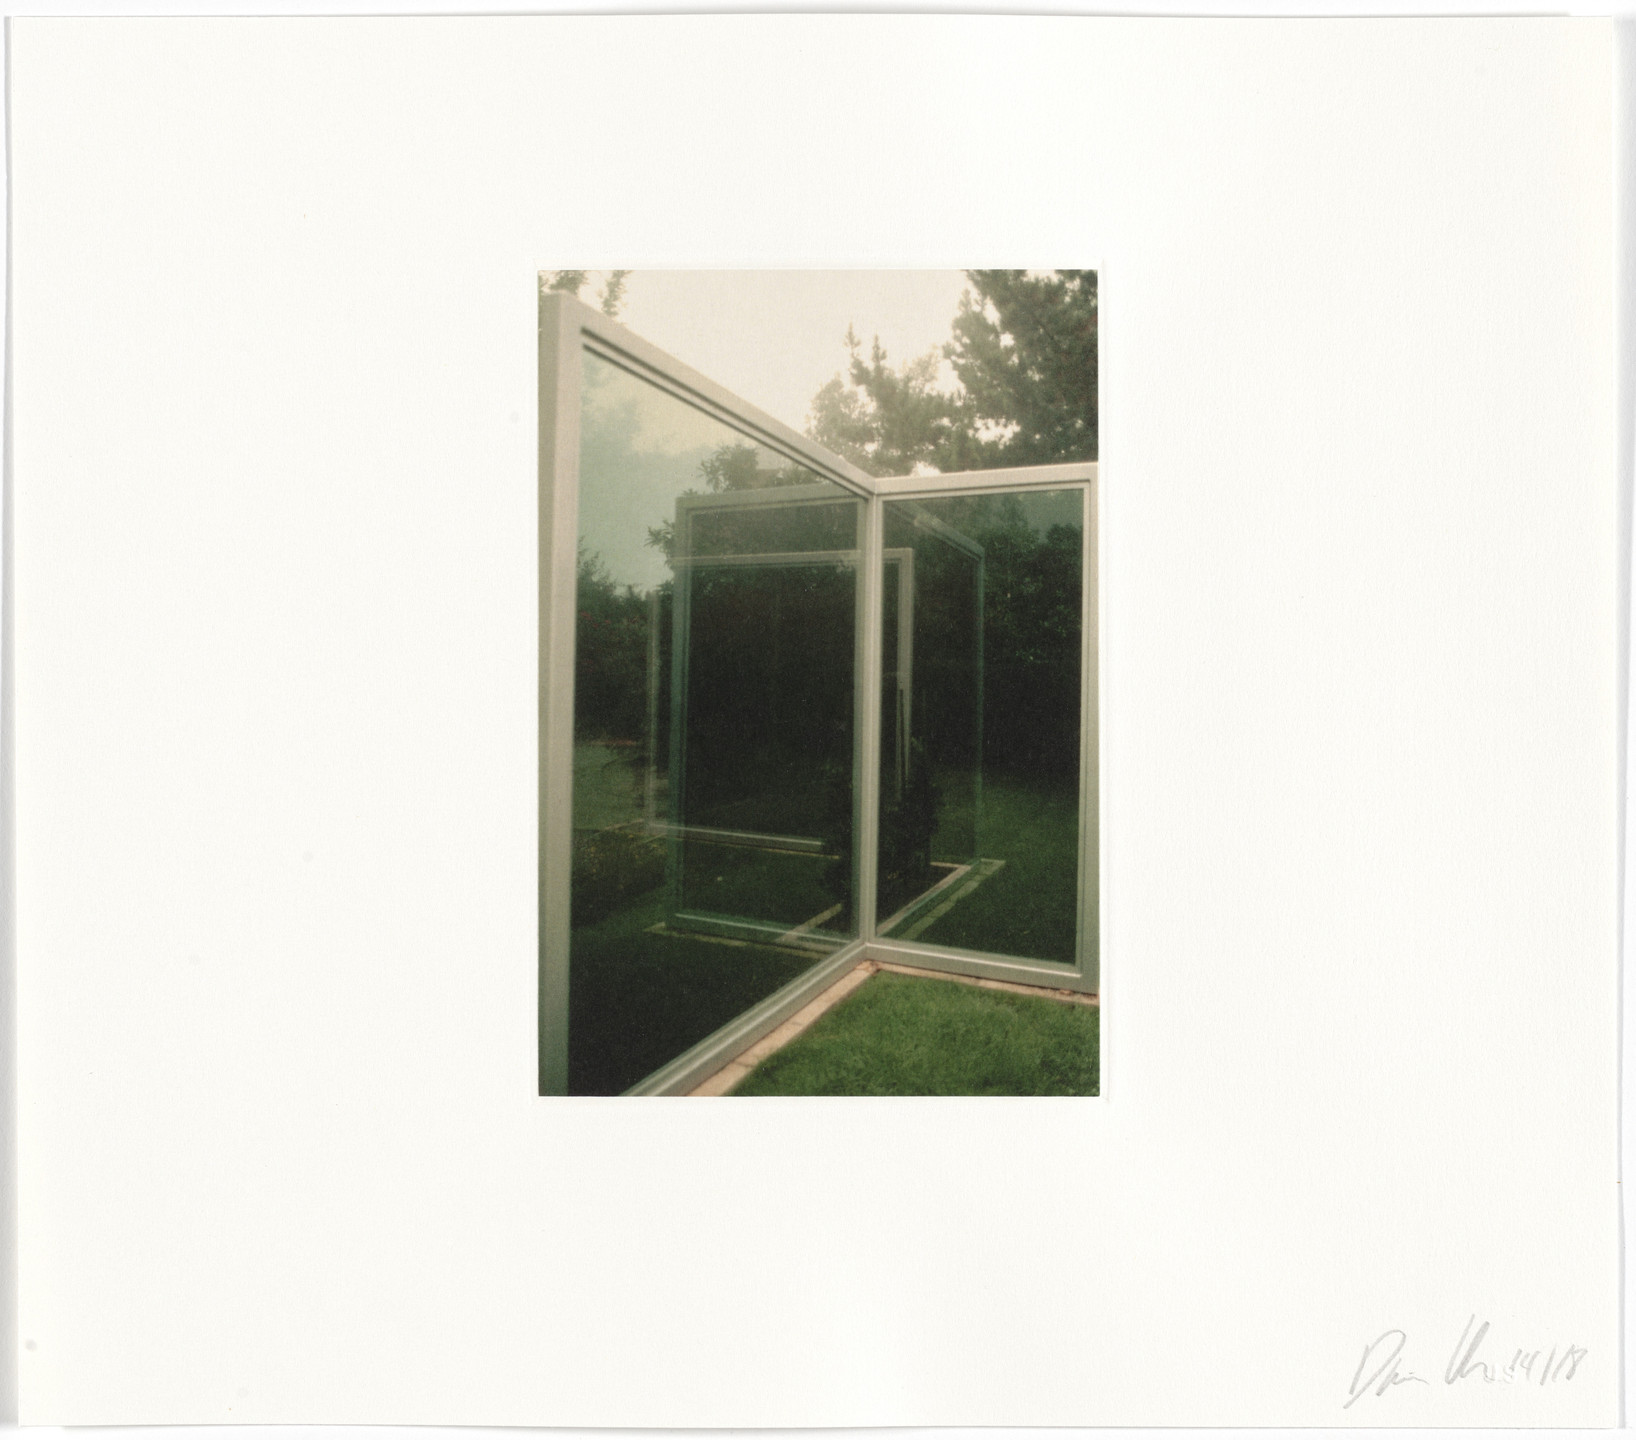 Dan Graham. Untitled from Two-Way Mirror / Hedge Projects. 2004